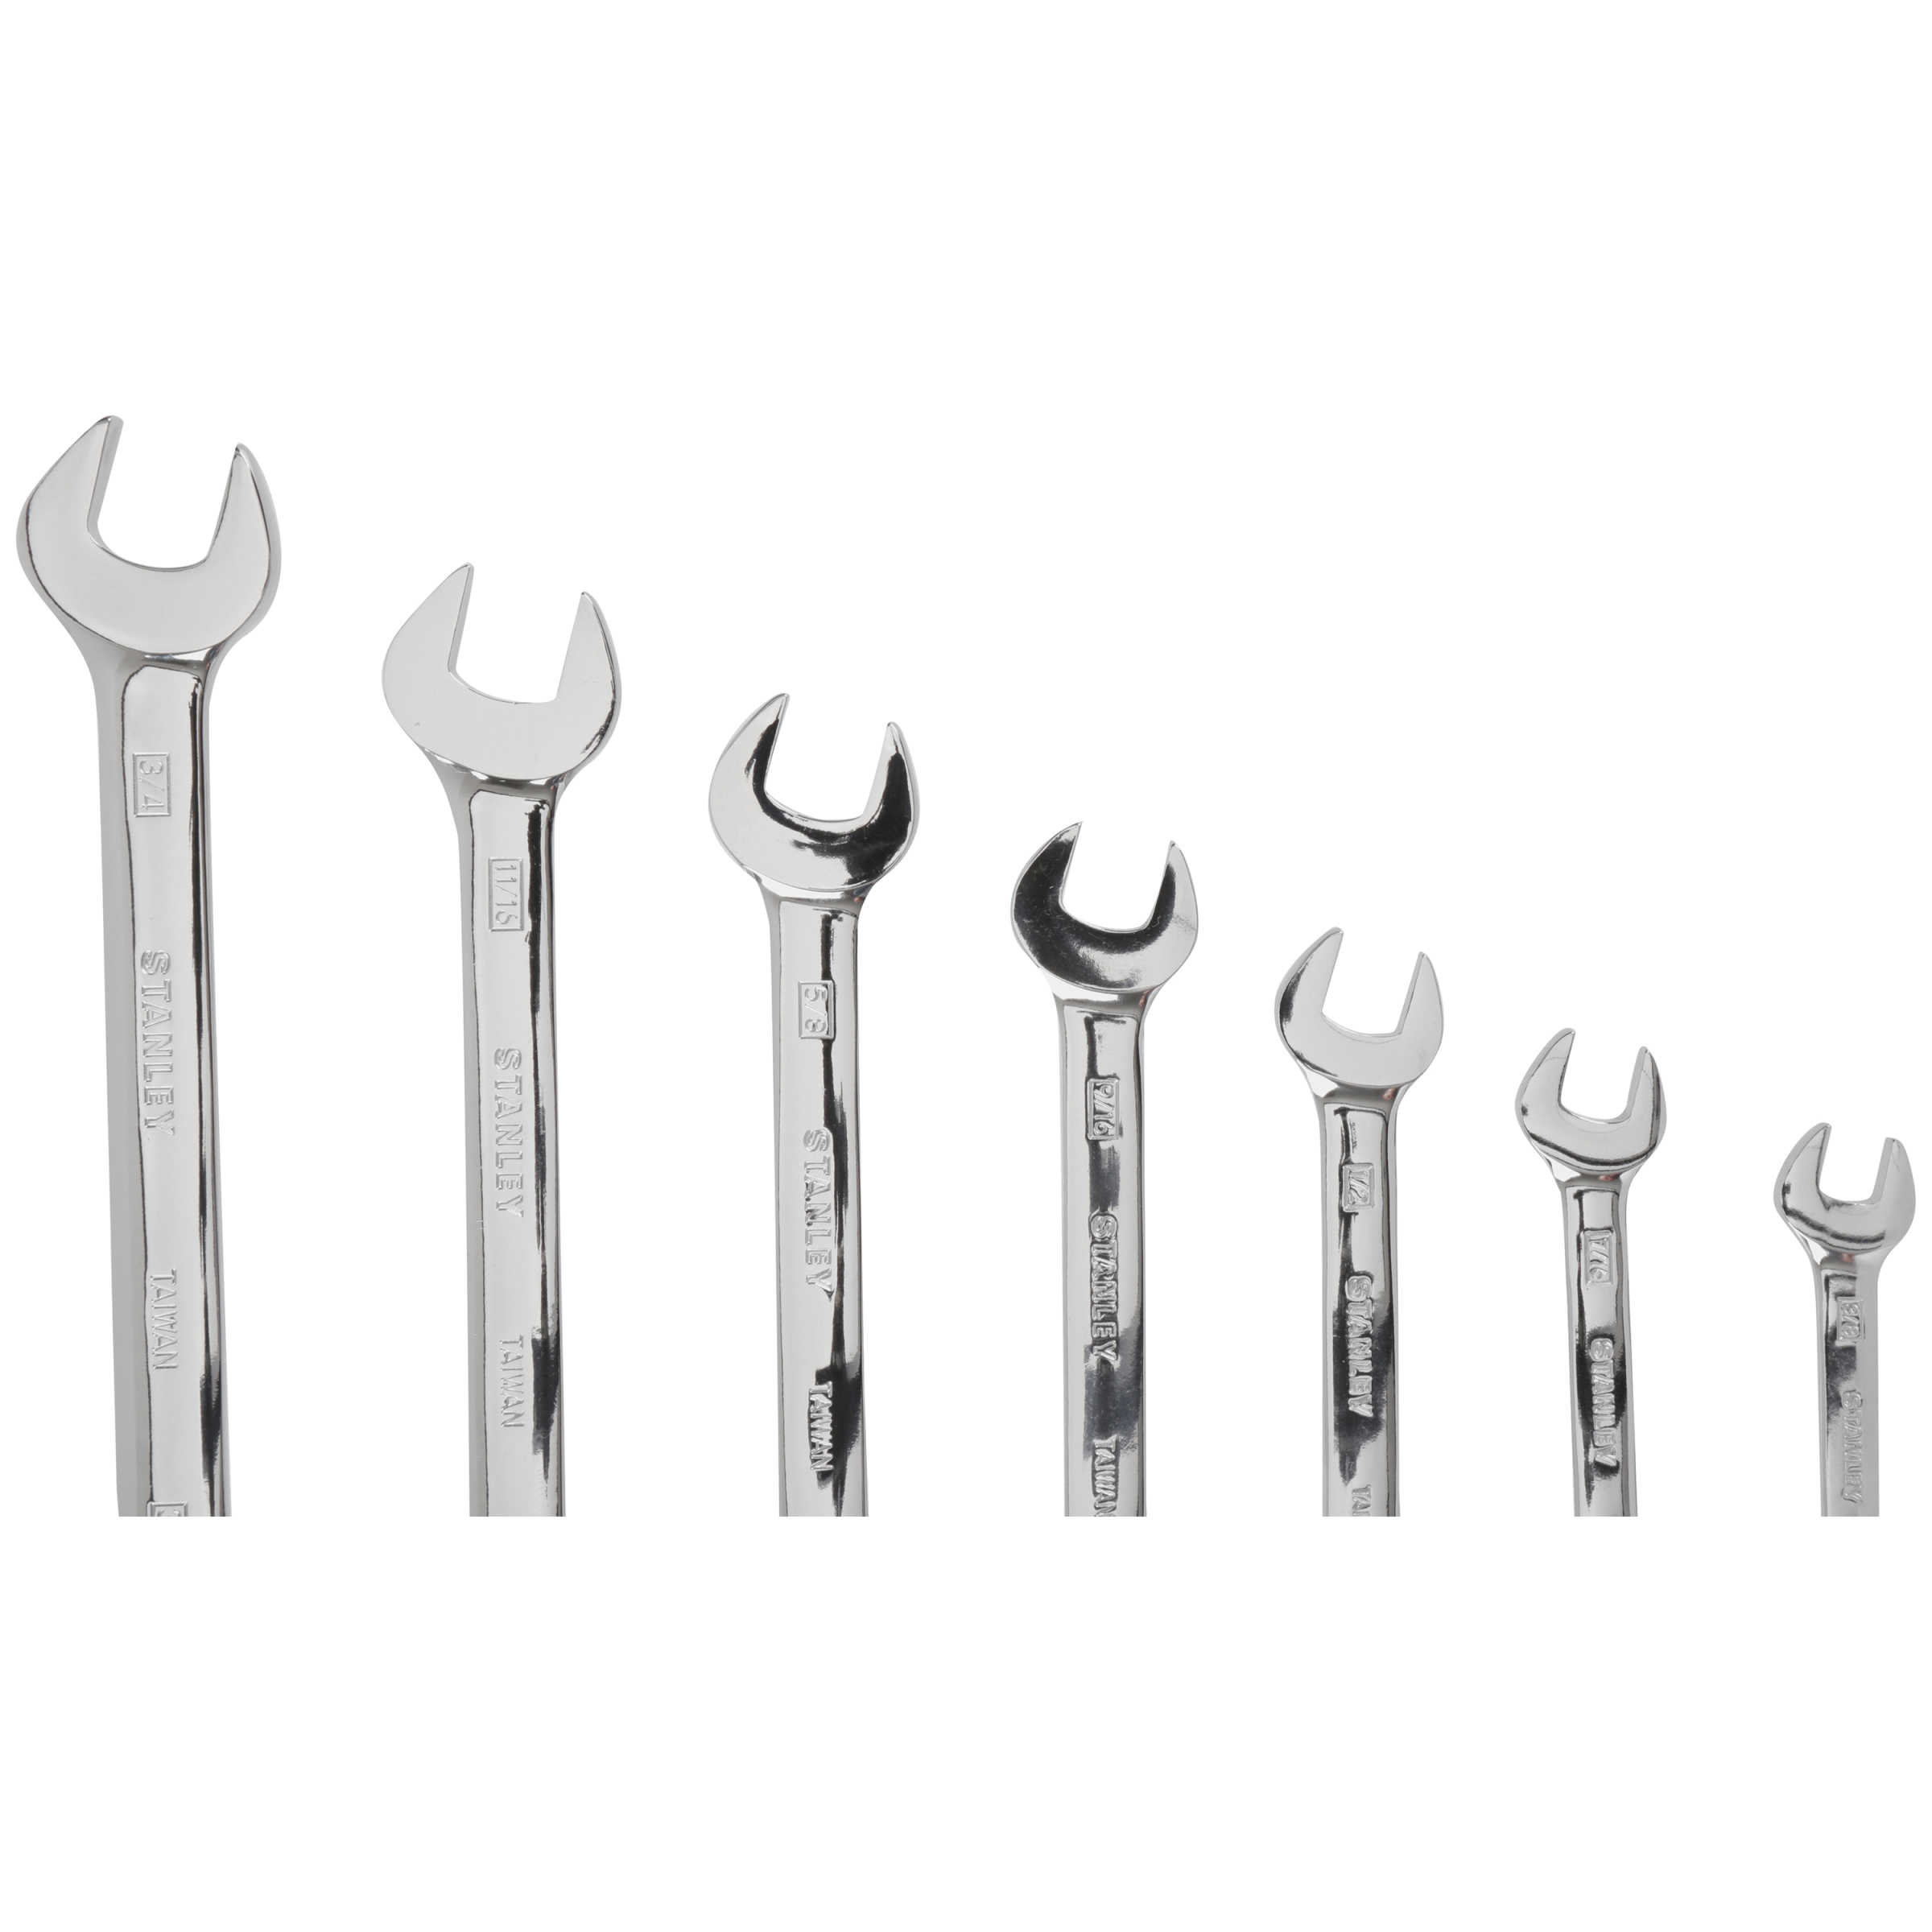 Stanley 7 Piece Ratcheting Wrench Set Sae